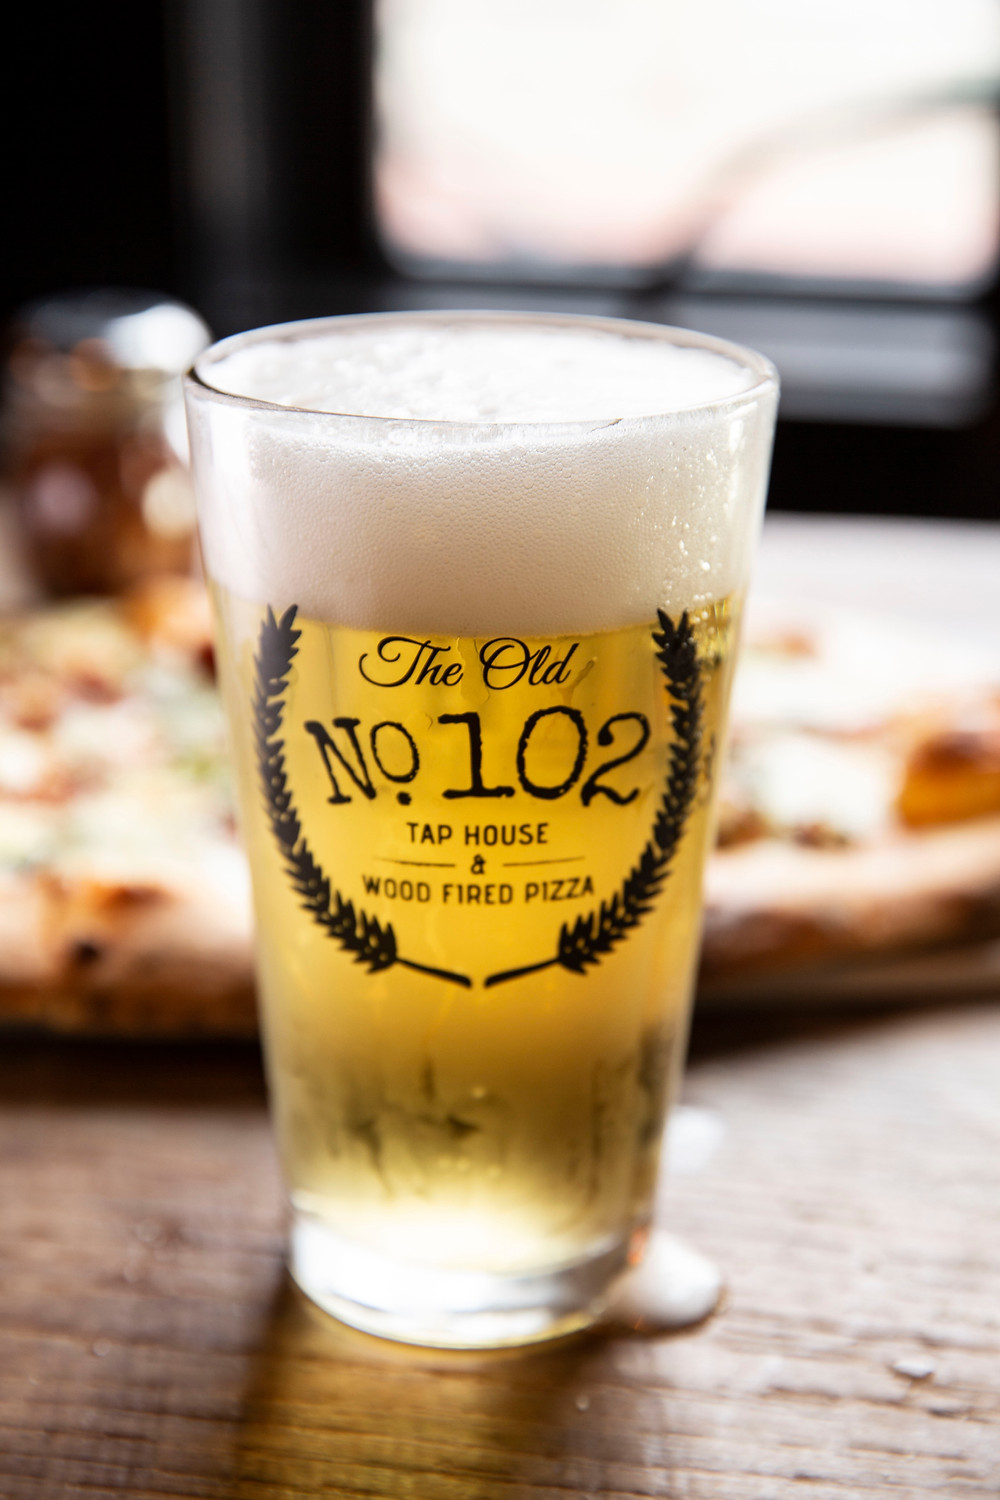 """Large glass of beer with a foamy top with """"The Old No. 102 Tap House & wood fired pizza"""" printed on it stands in front of a large pizza"""